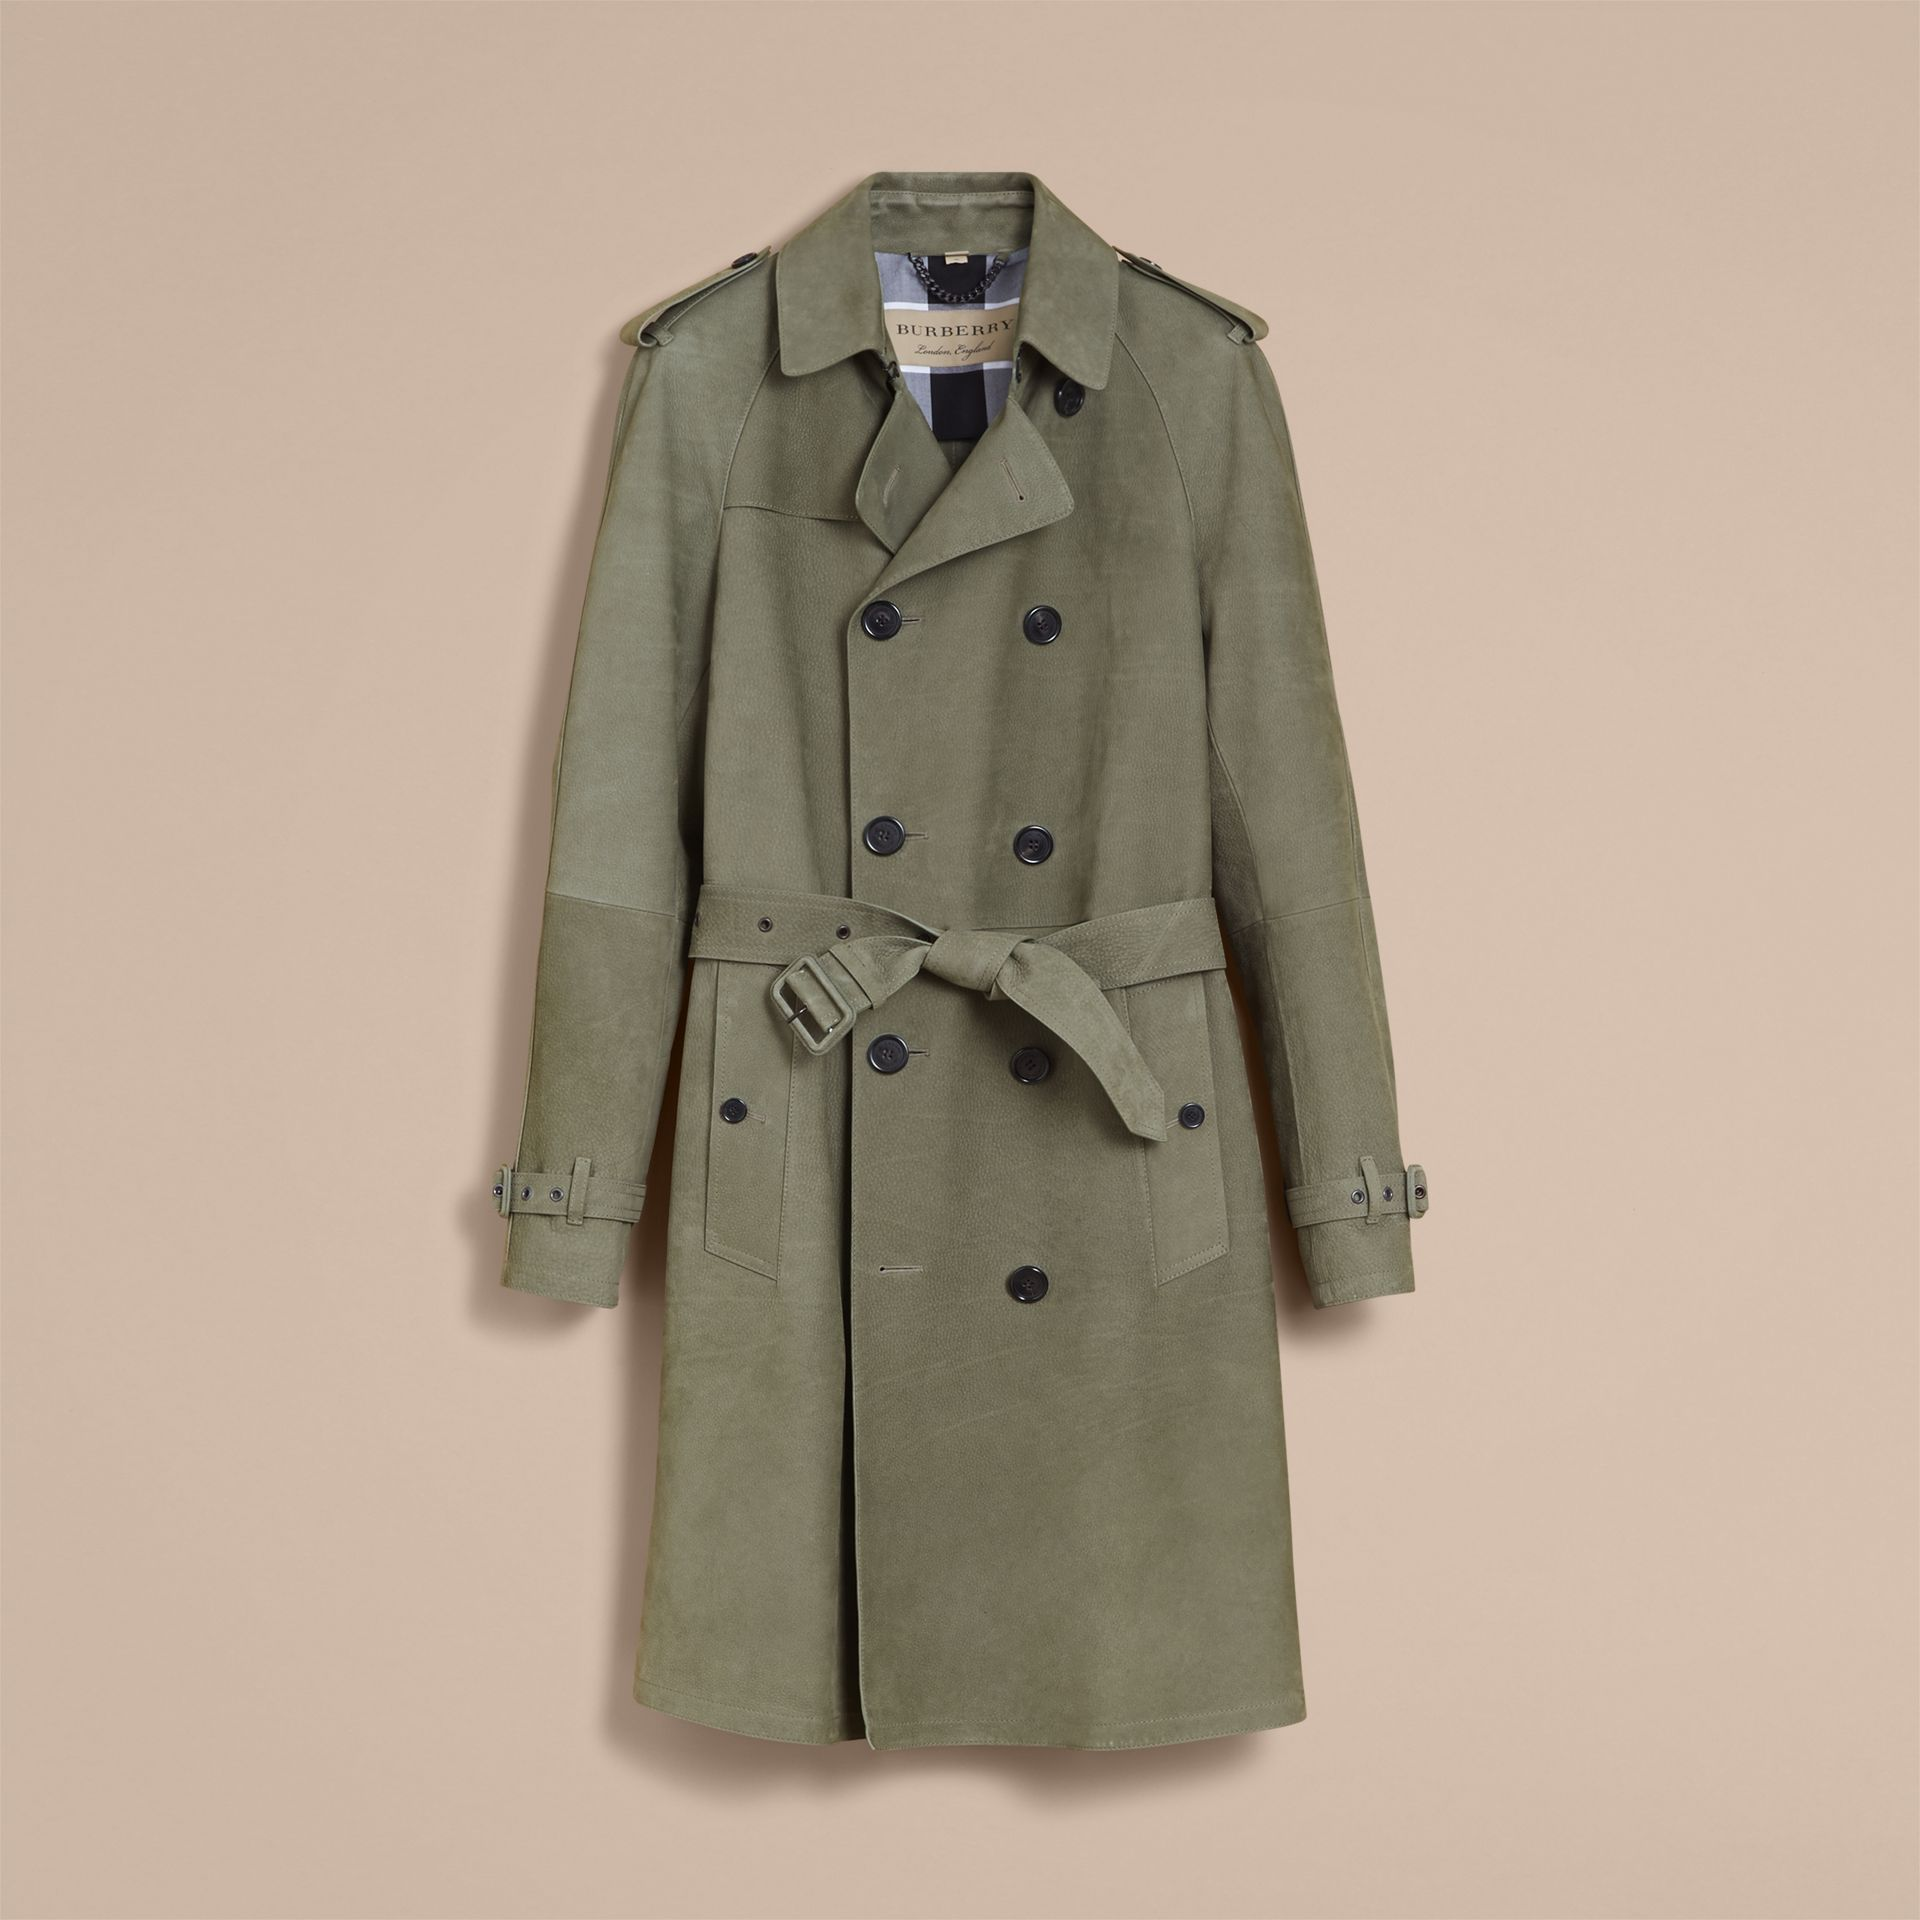 Lightweight Grainy Nubuck Trench Coat in Khaki Green - Men | Burberry - gallery image 4